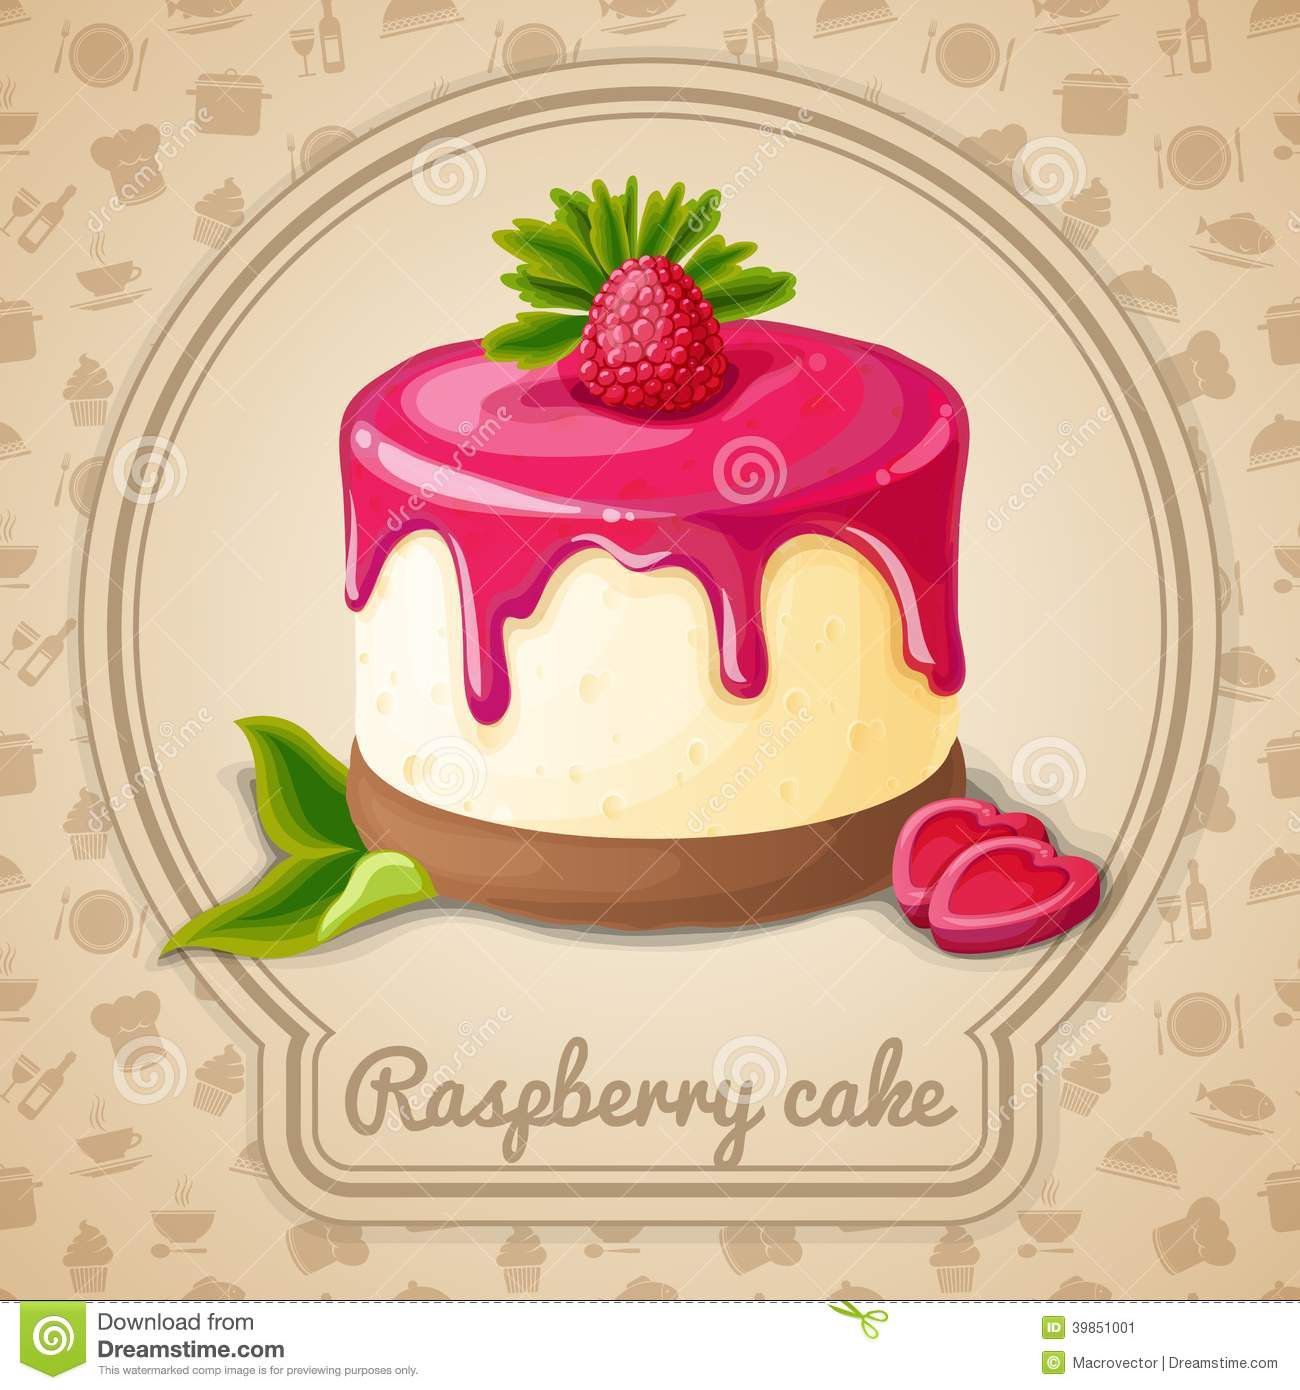 Raspberry Cake Emblem Stock Vector.